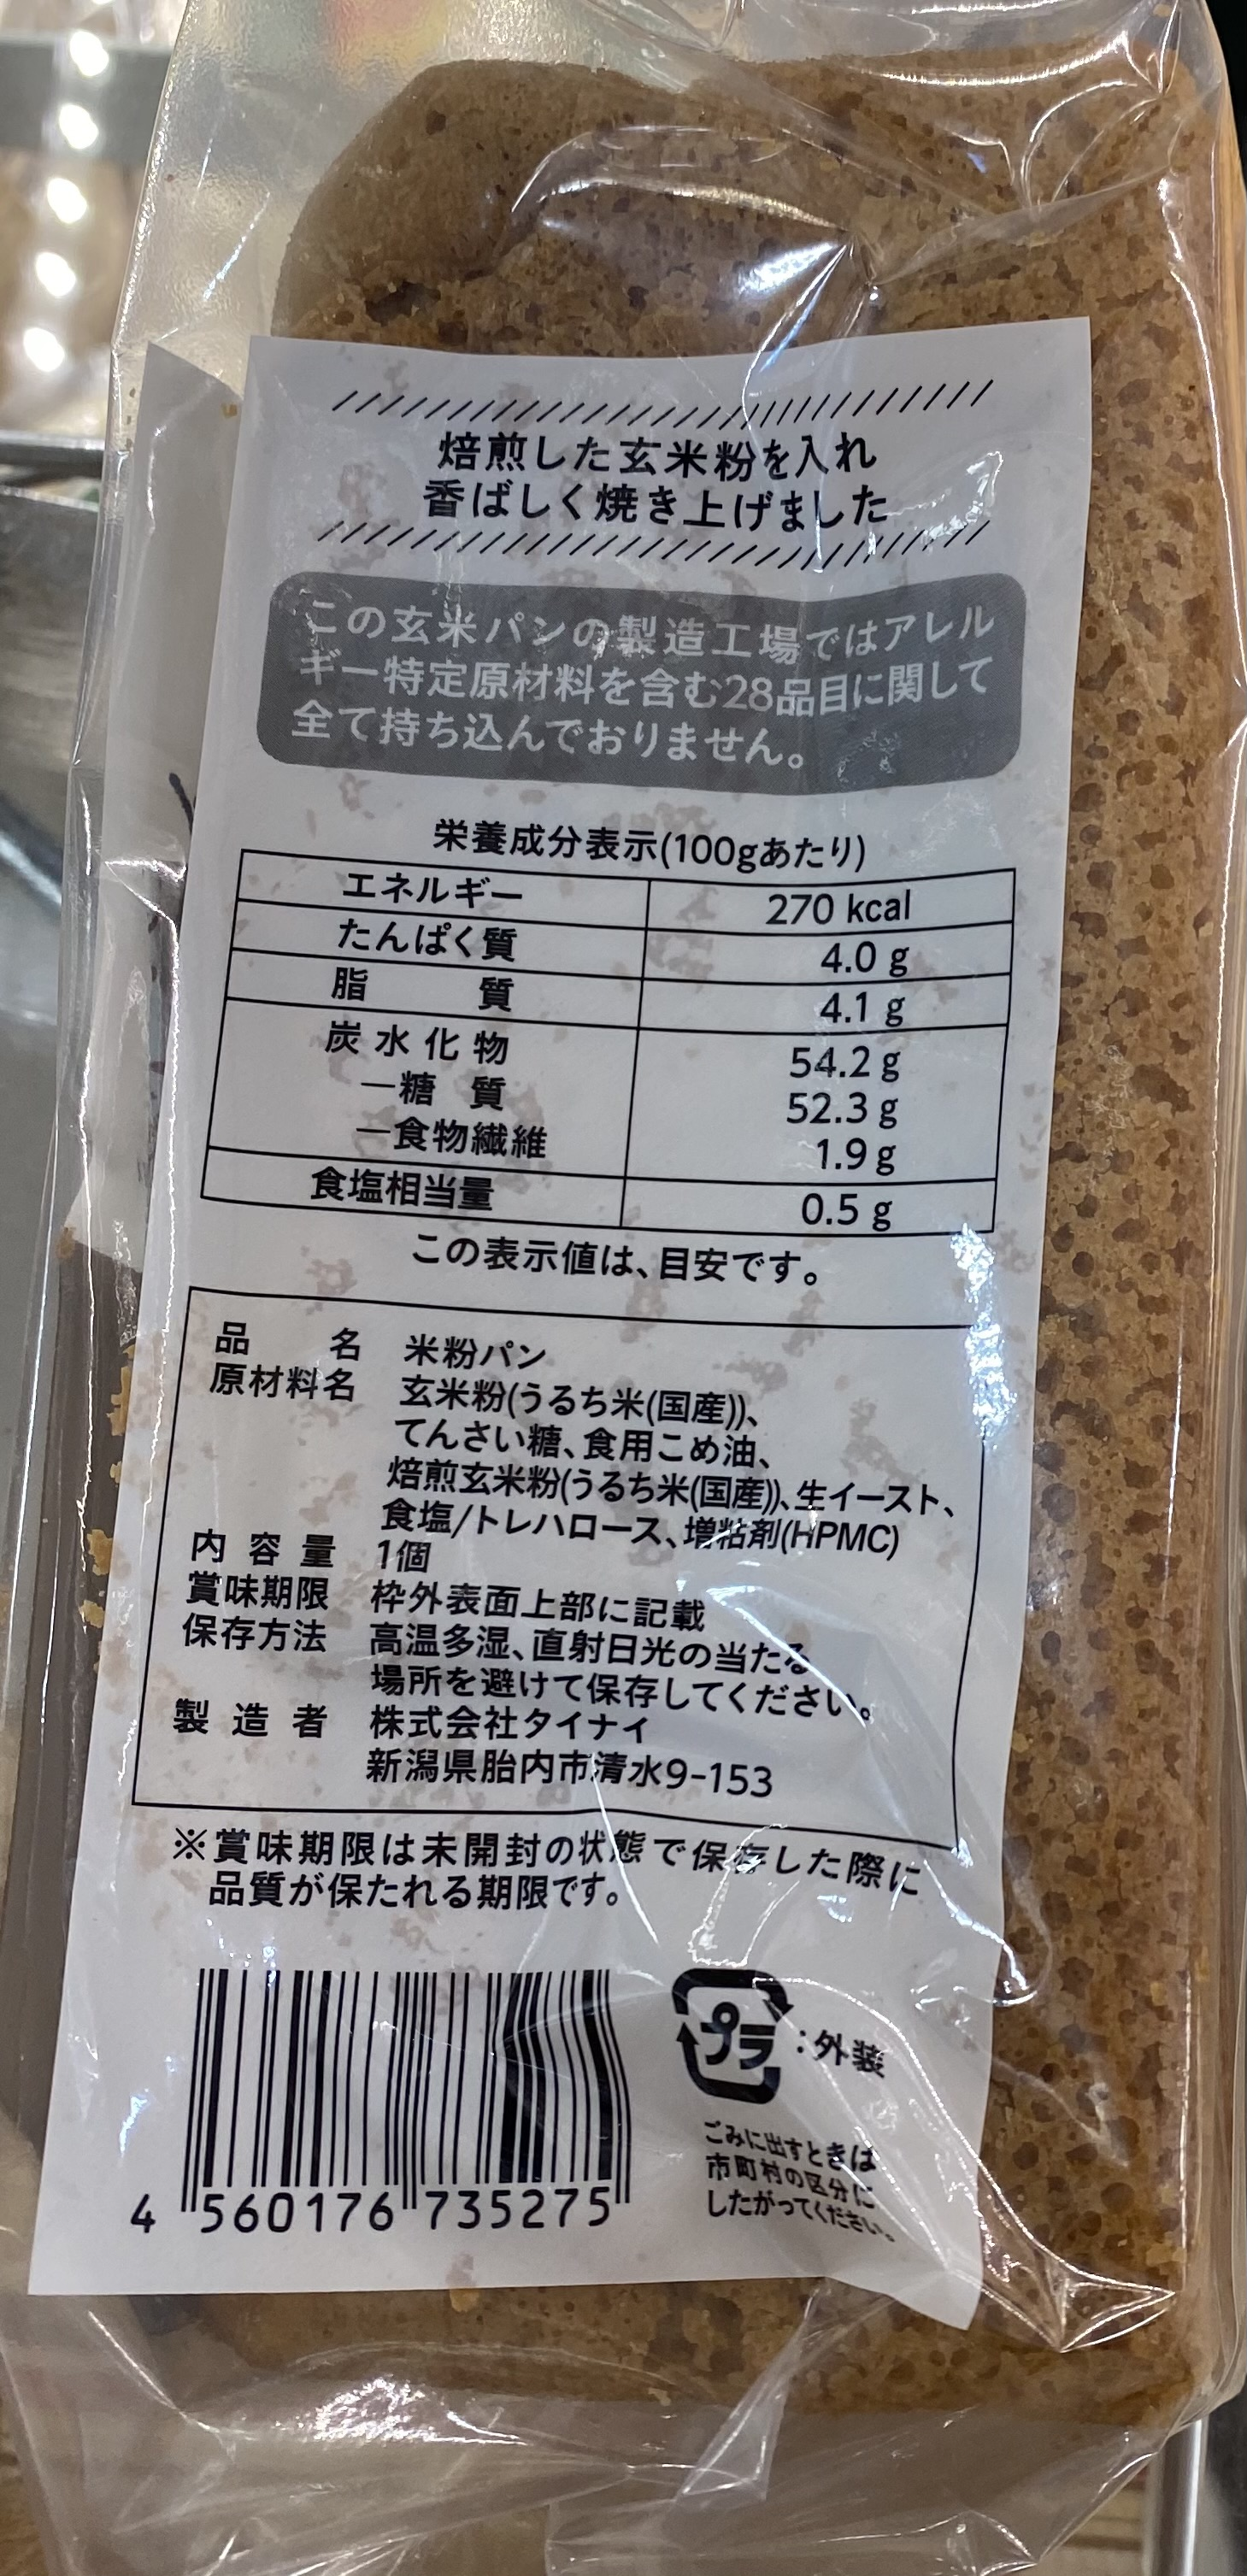 Tainai Fragrant Bread back of package